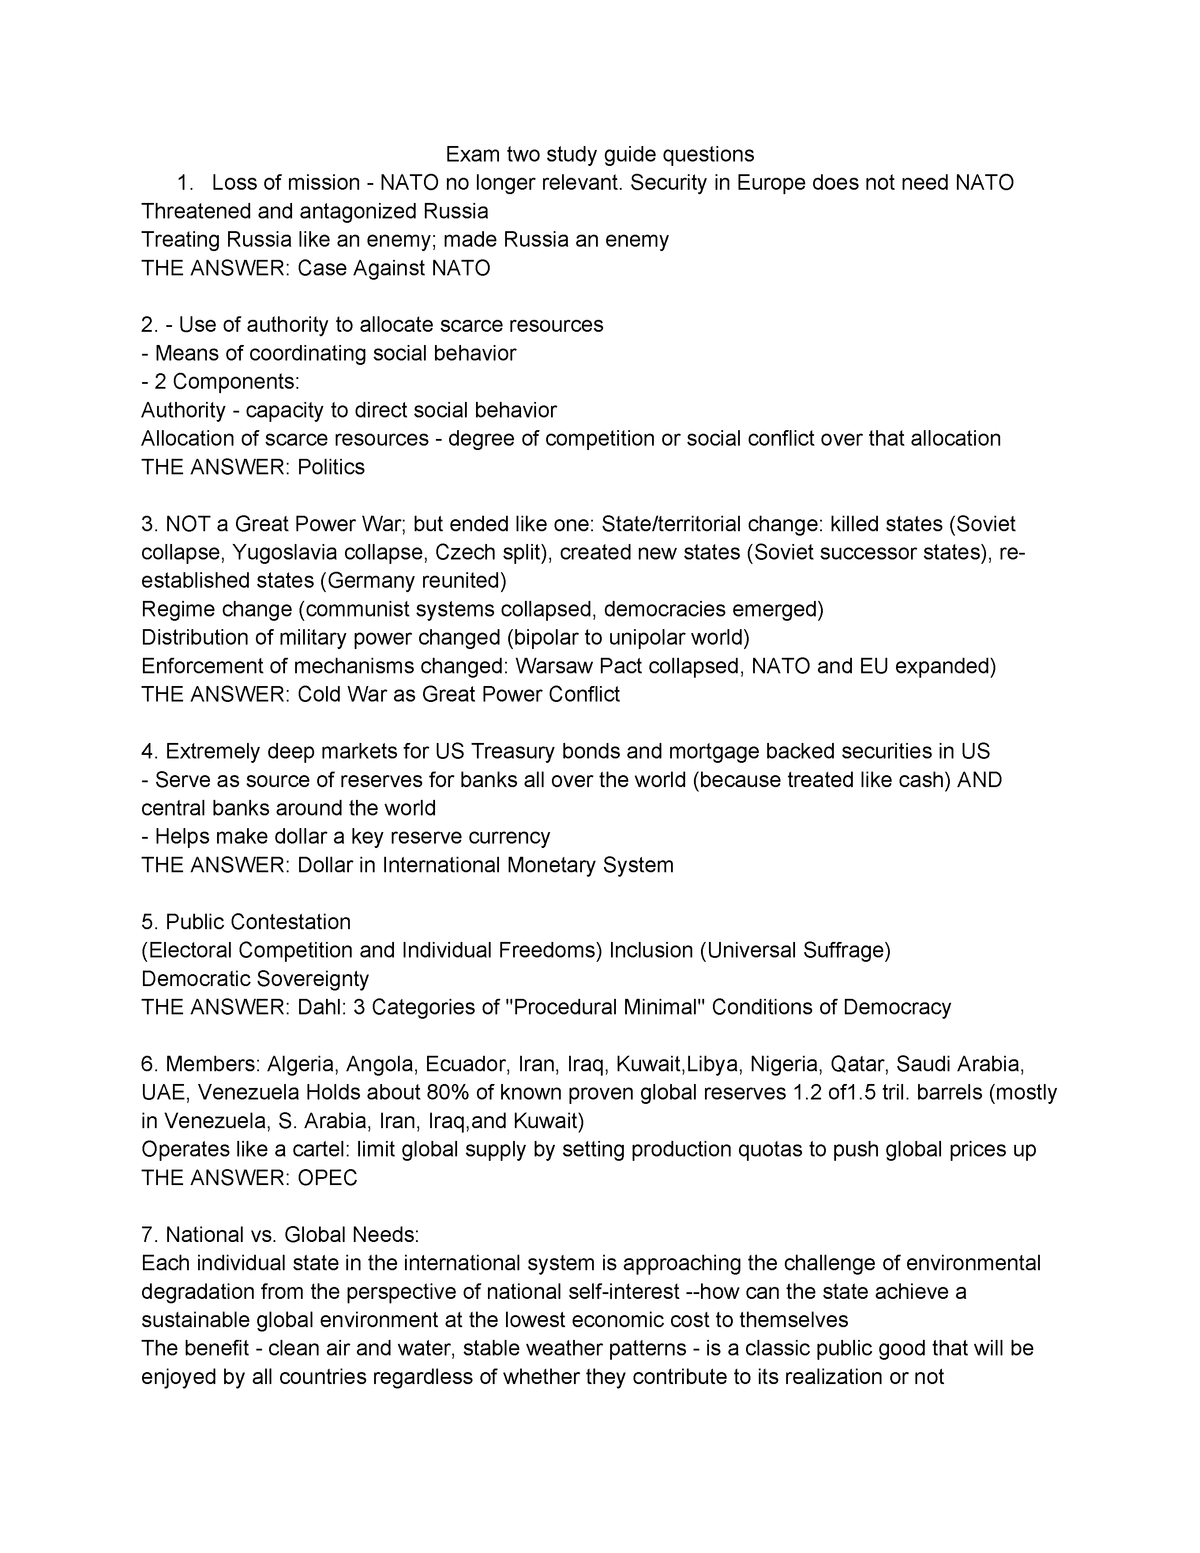 Exam Fall 2016, questions and answers - GOV312L - StuDocu